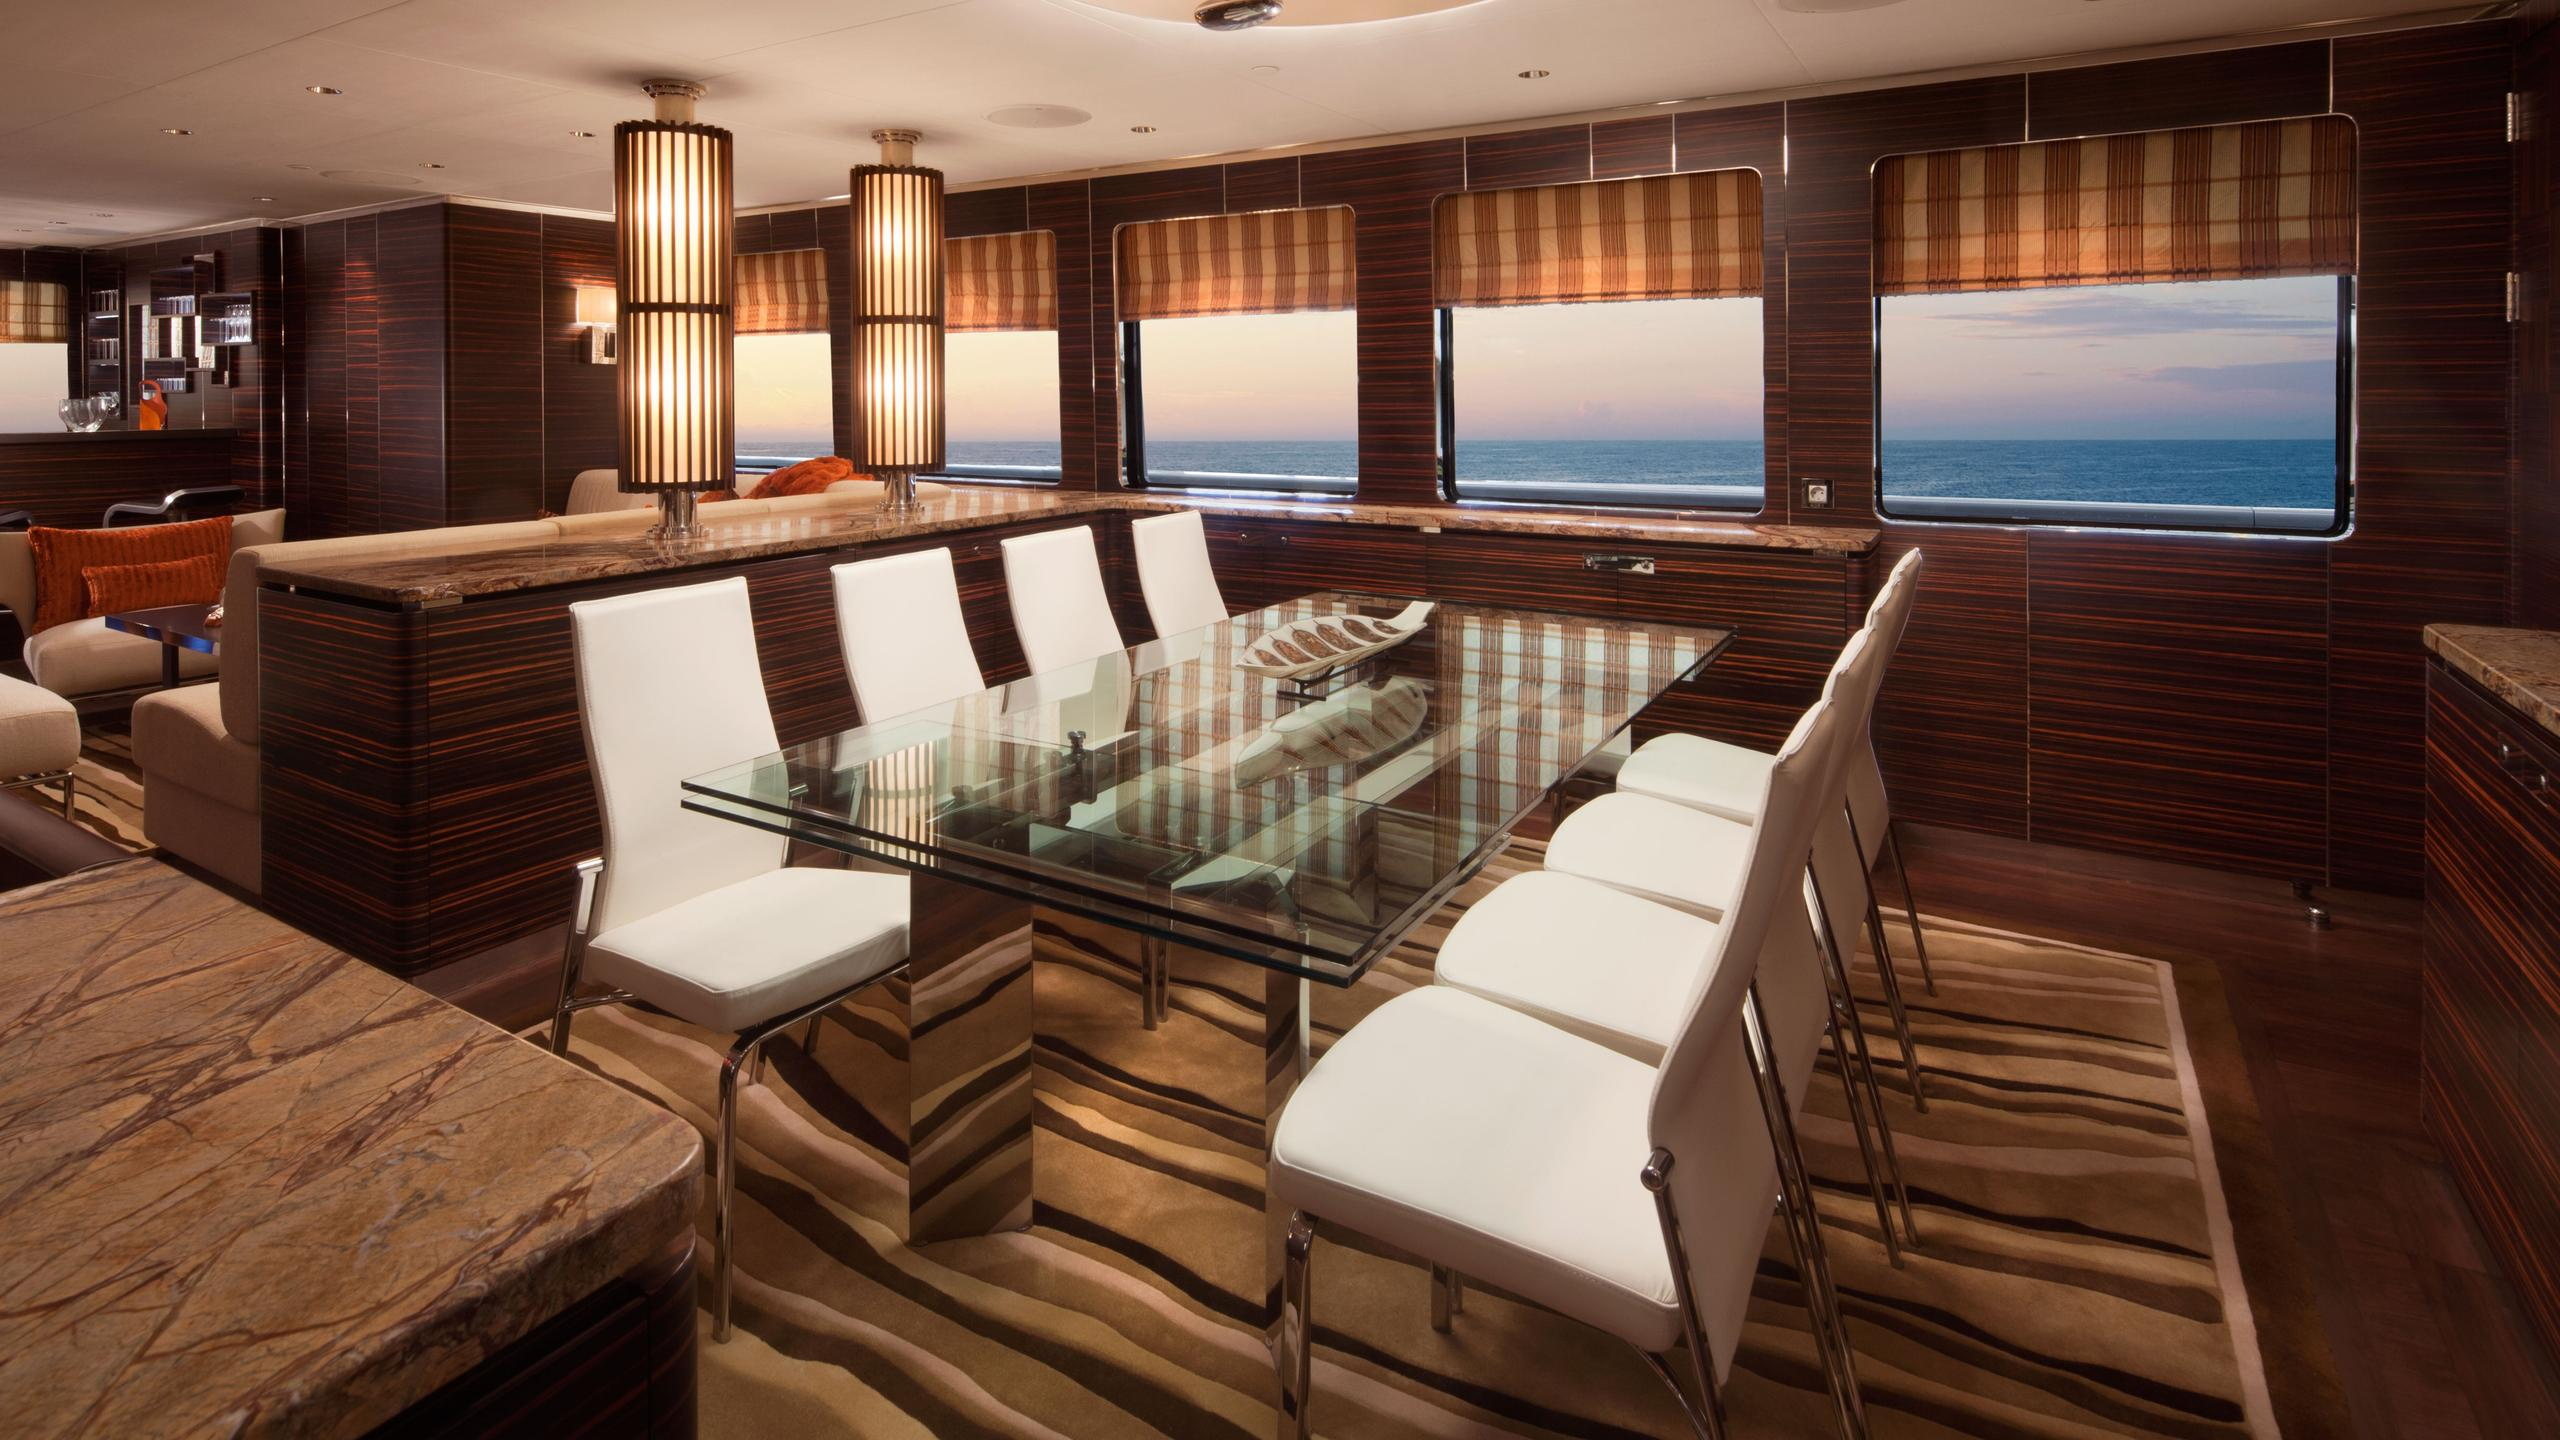 qing-motor-yacht-cheoy-lee-2012-46m-dining